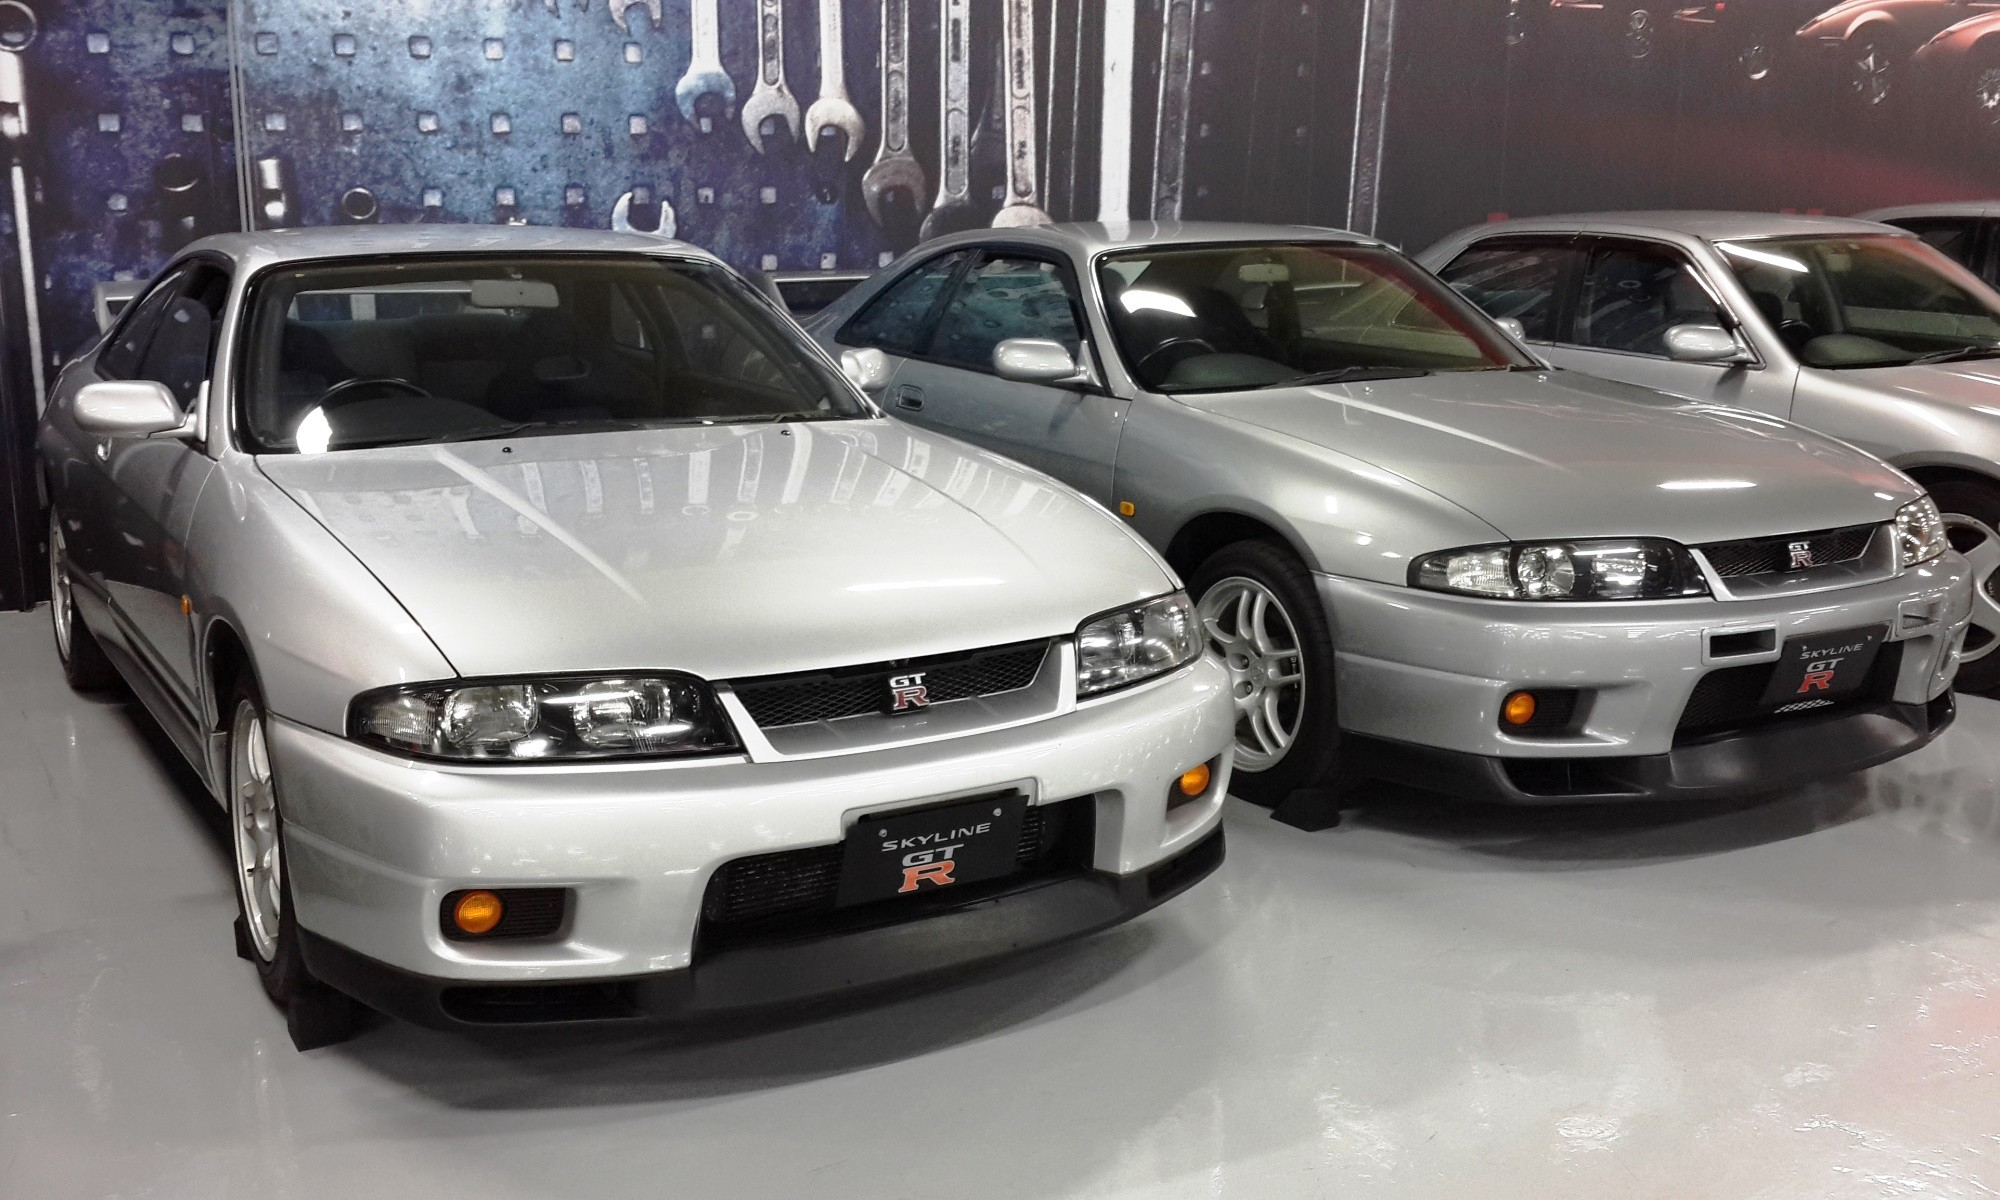 There is a GTR from each generation in the collection